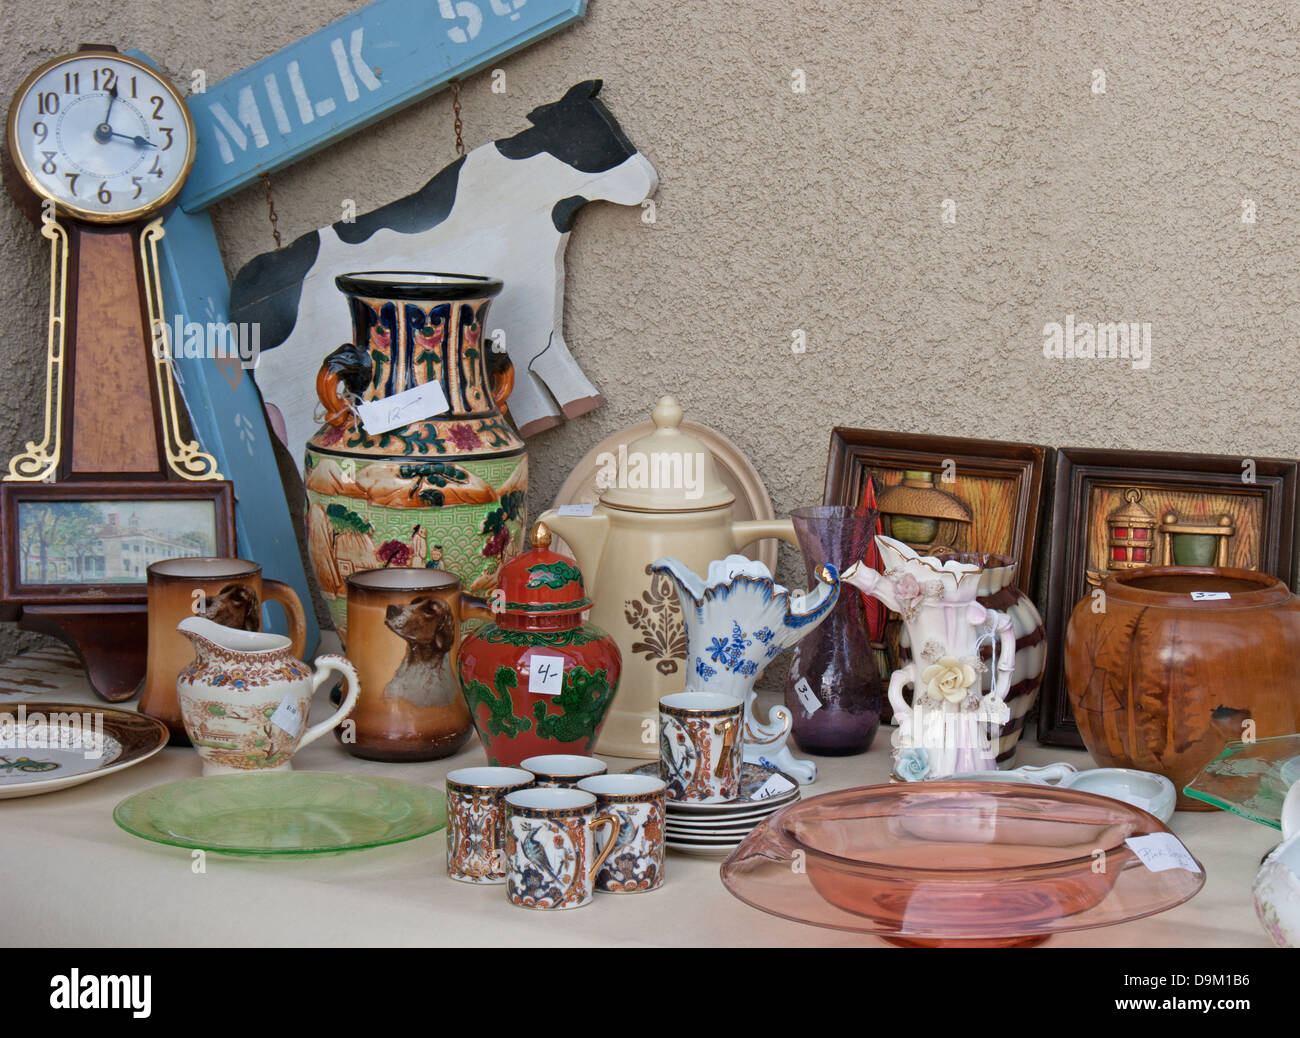 Yard garage estate tag sale antiques and vintage smalls on display with blank space for message. - Stock Image